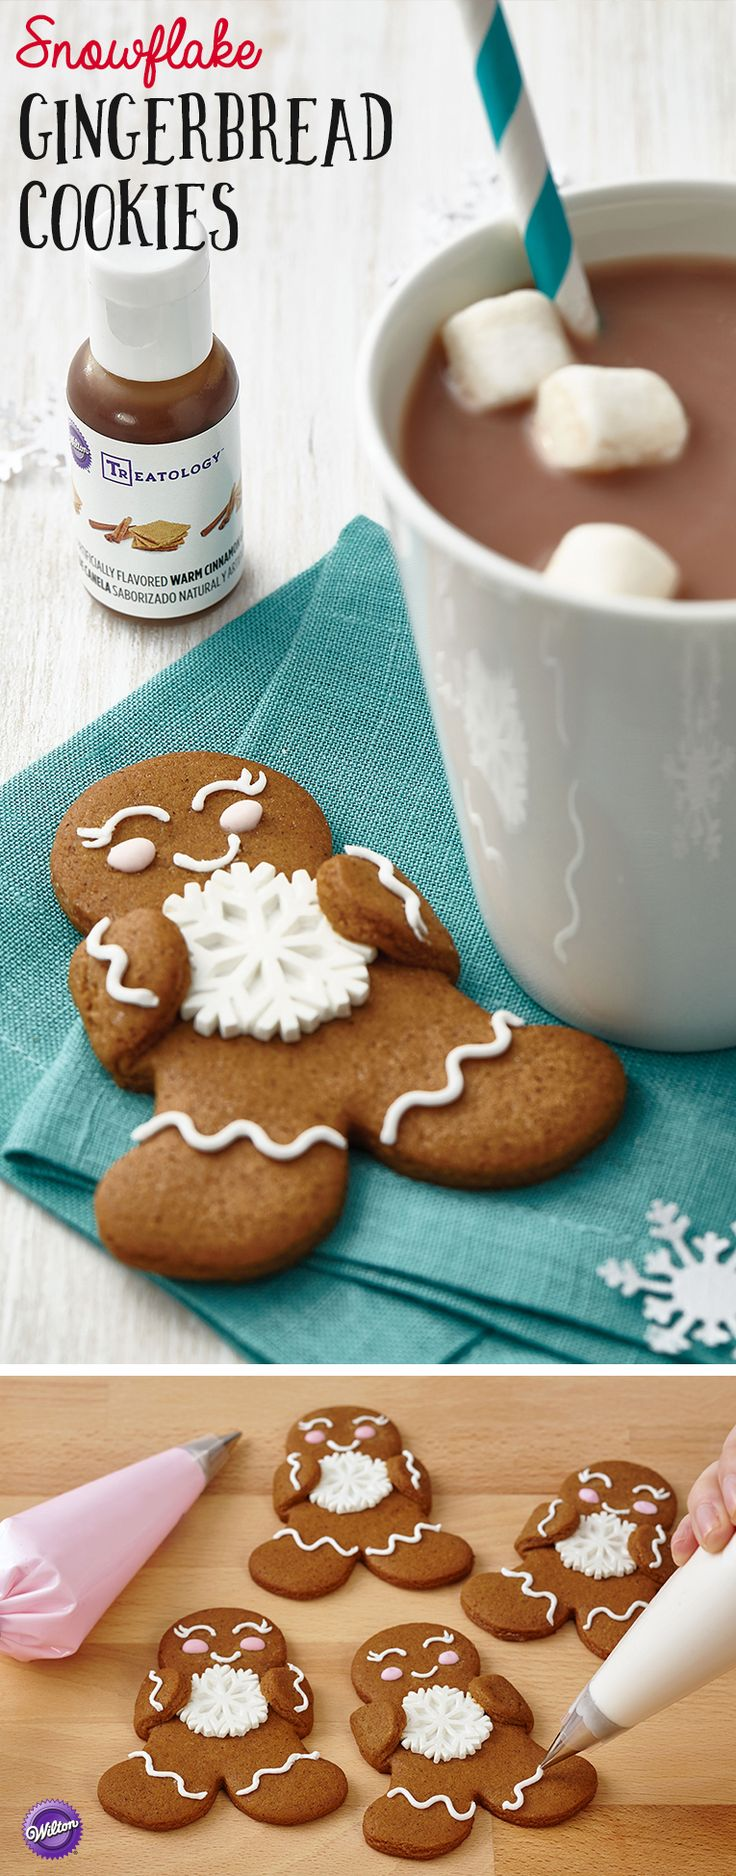 Snowflake Gingerbread Cookies - This team of gingerbread treats is happily showing their winter spirit with Wilton Royal Snowflake Icing Decorations. Simple lines, dots and swirls of royal icing give each treat a personality of its own.